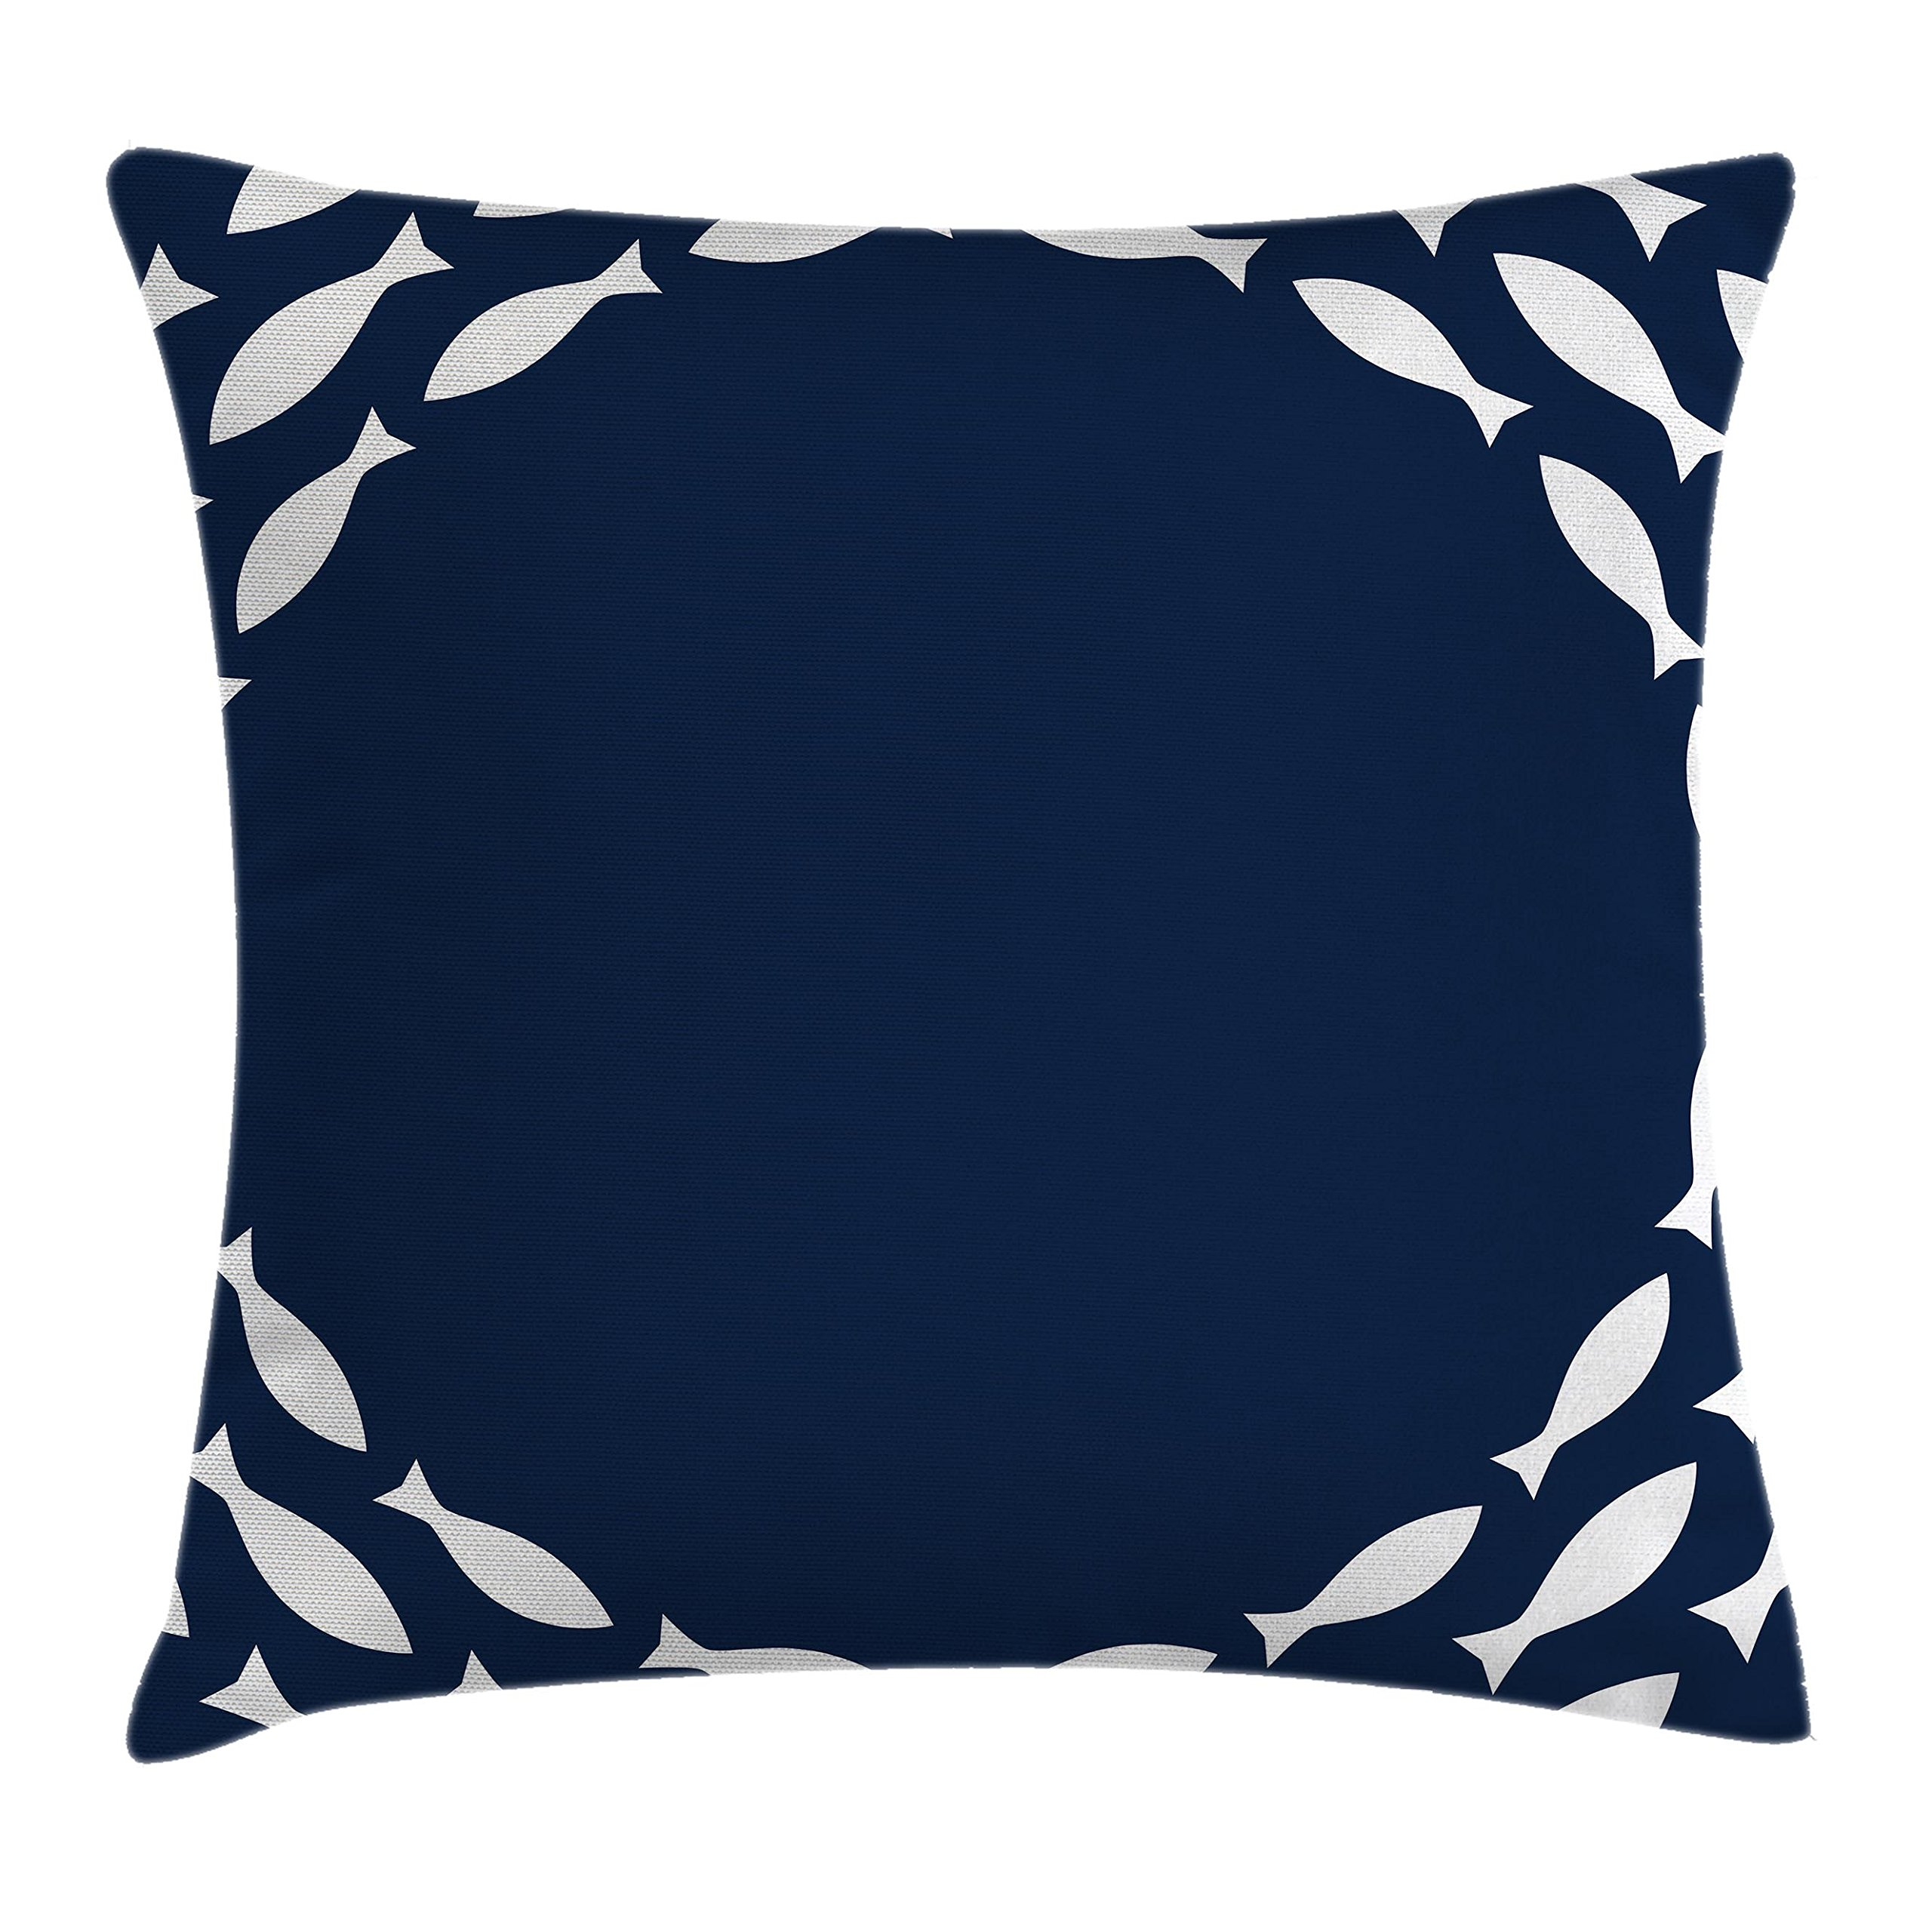 Ambesonne Navy Blue Decor Throw Pillow Cushion Cover, Ocean Navy Themed School of Cute Fish Swimming in a Circle Print, Decorative Square Accent Pillow Case, 18 X 18 inches, Navy Blue and White